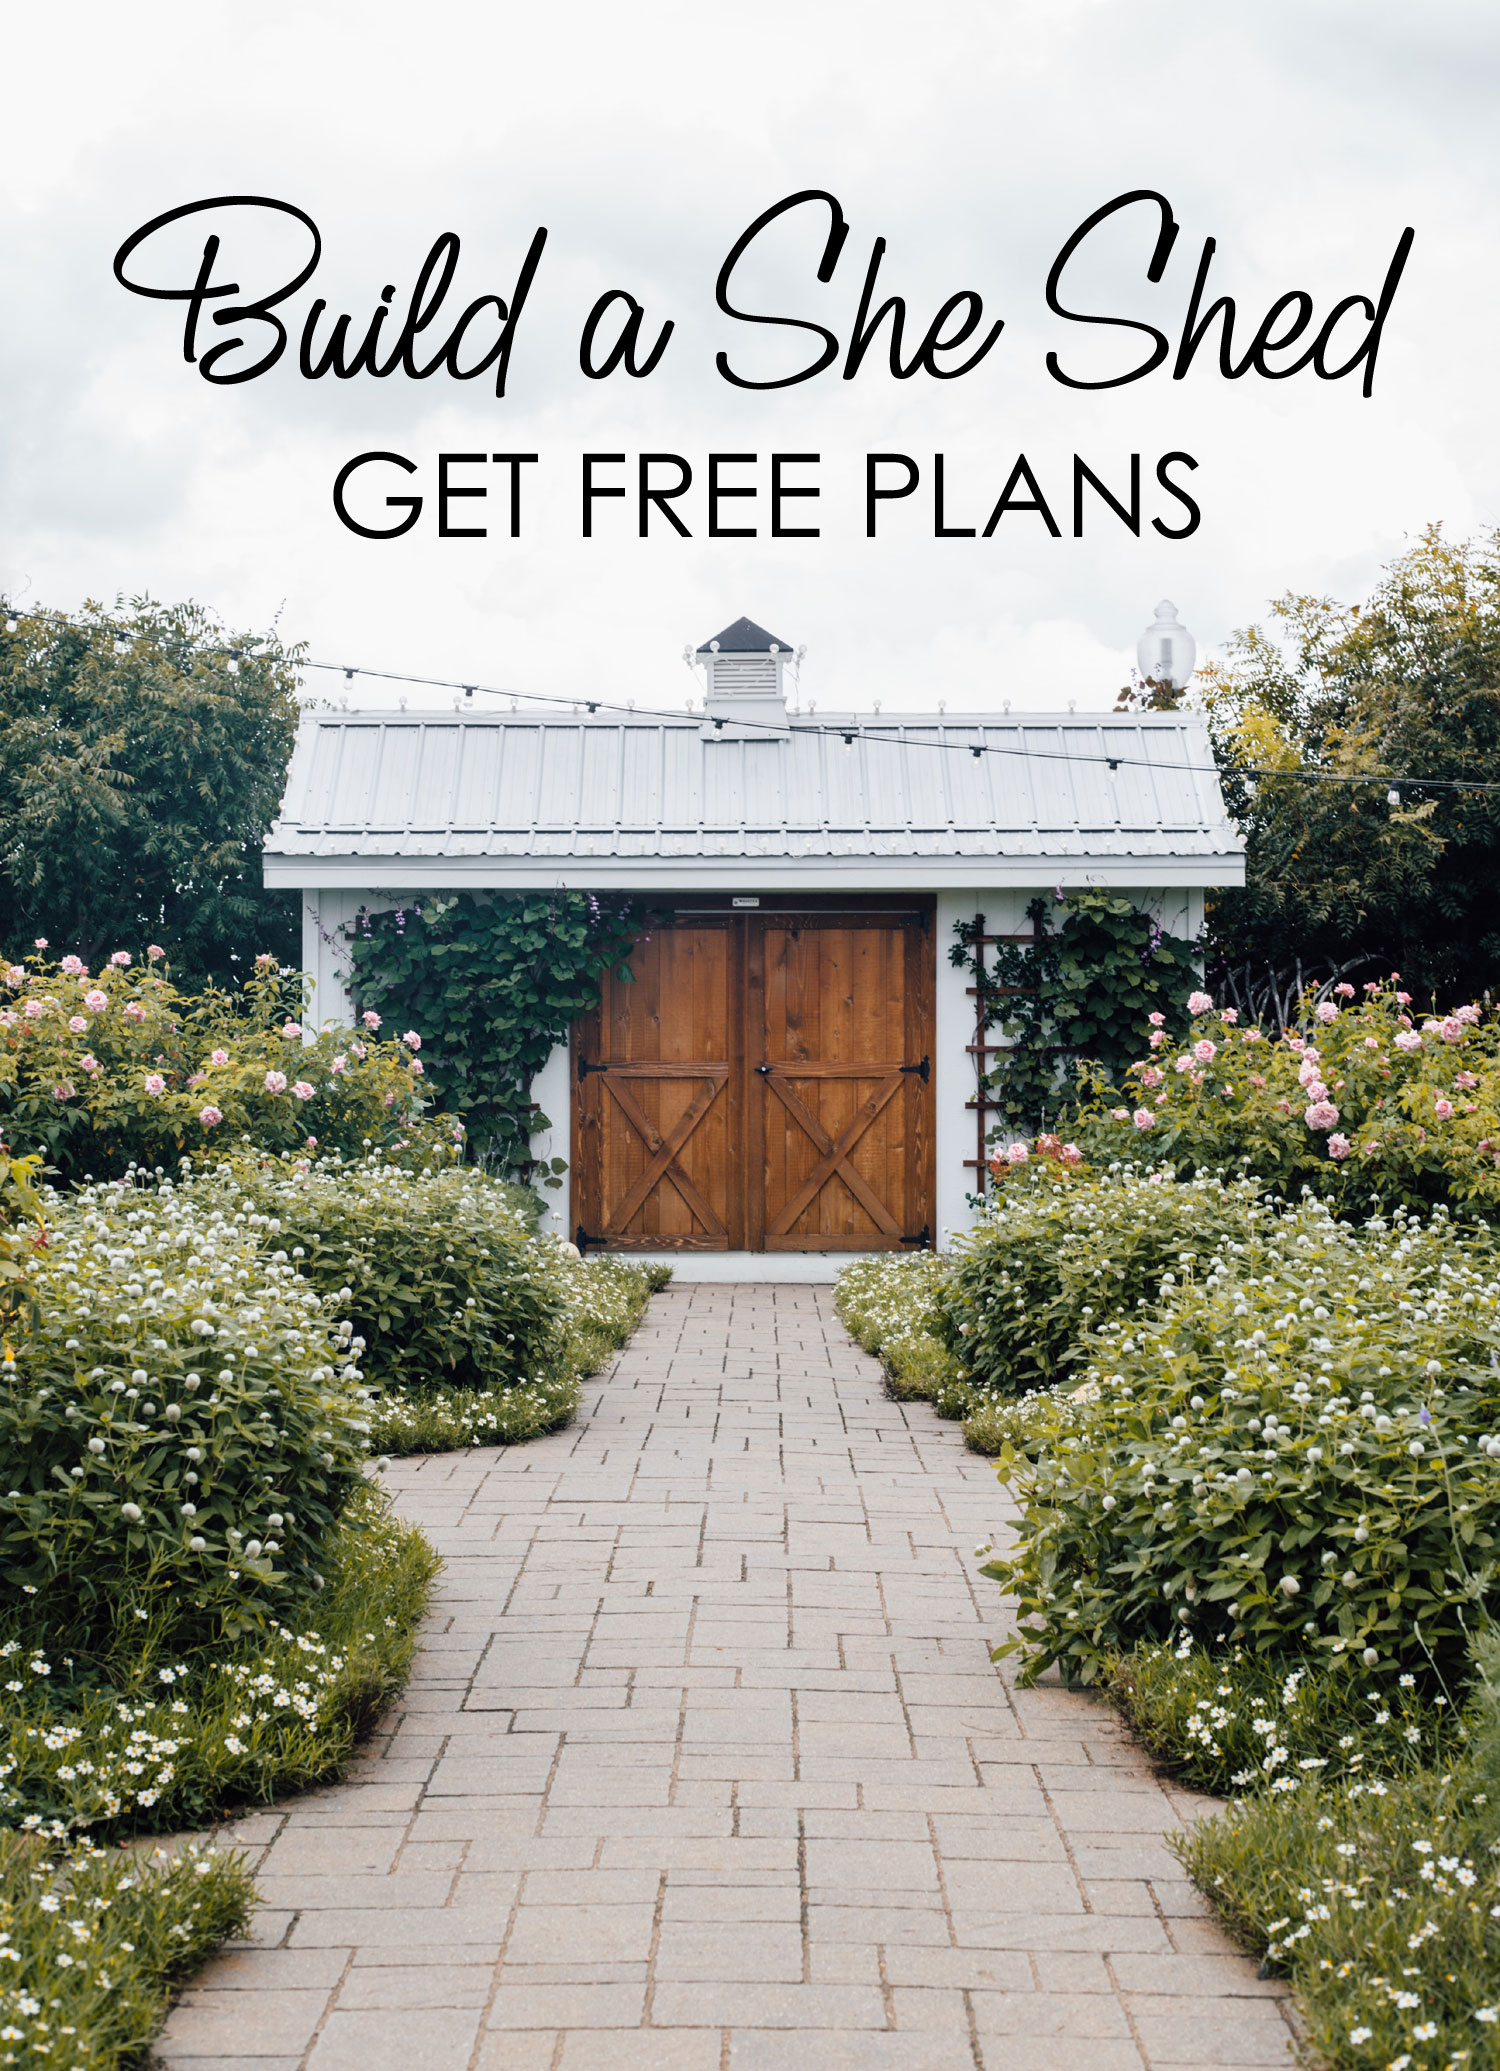 Build a She Shed in a Weekend with These Plans